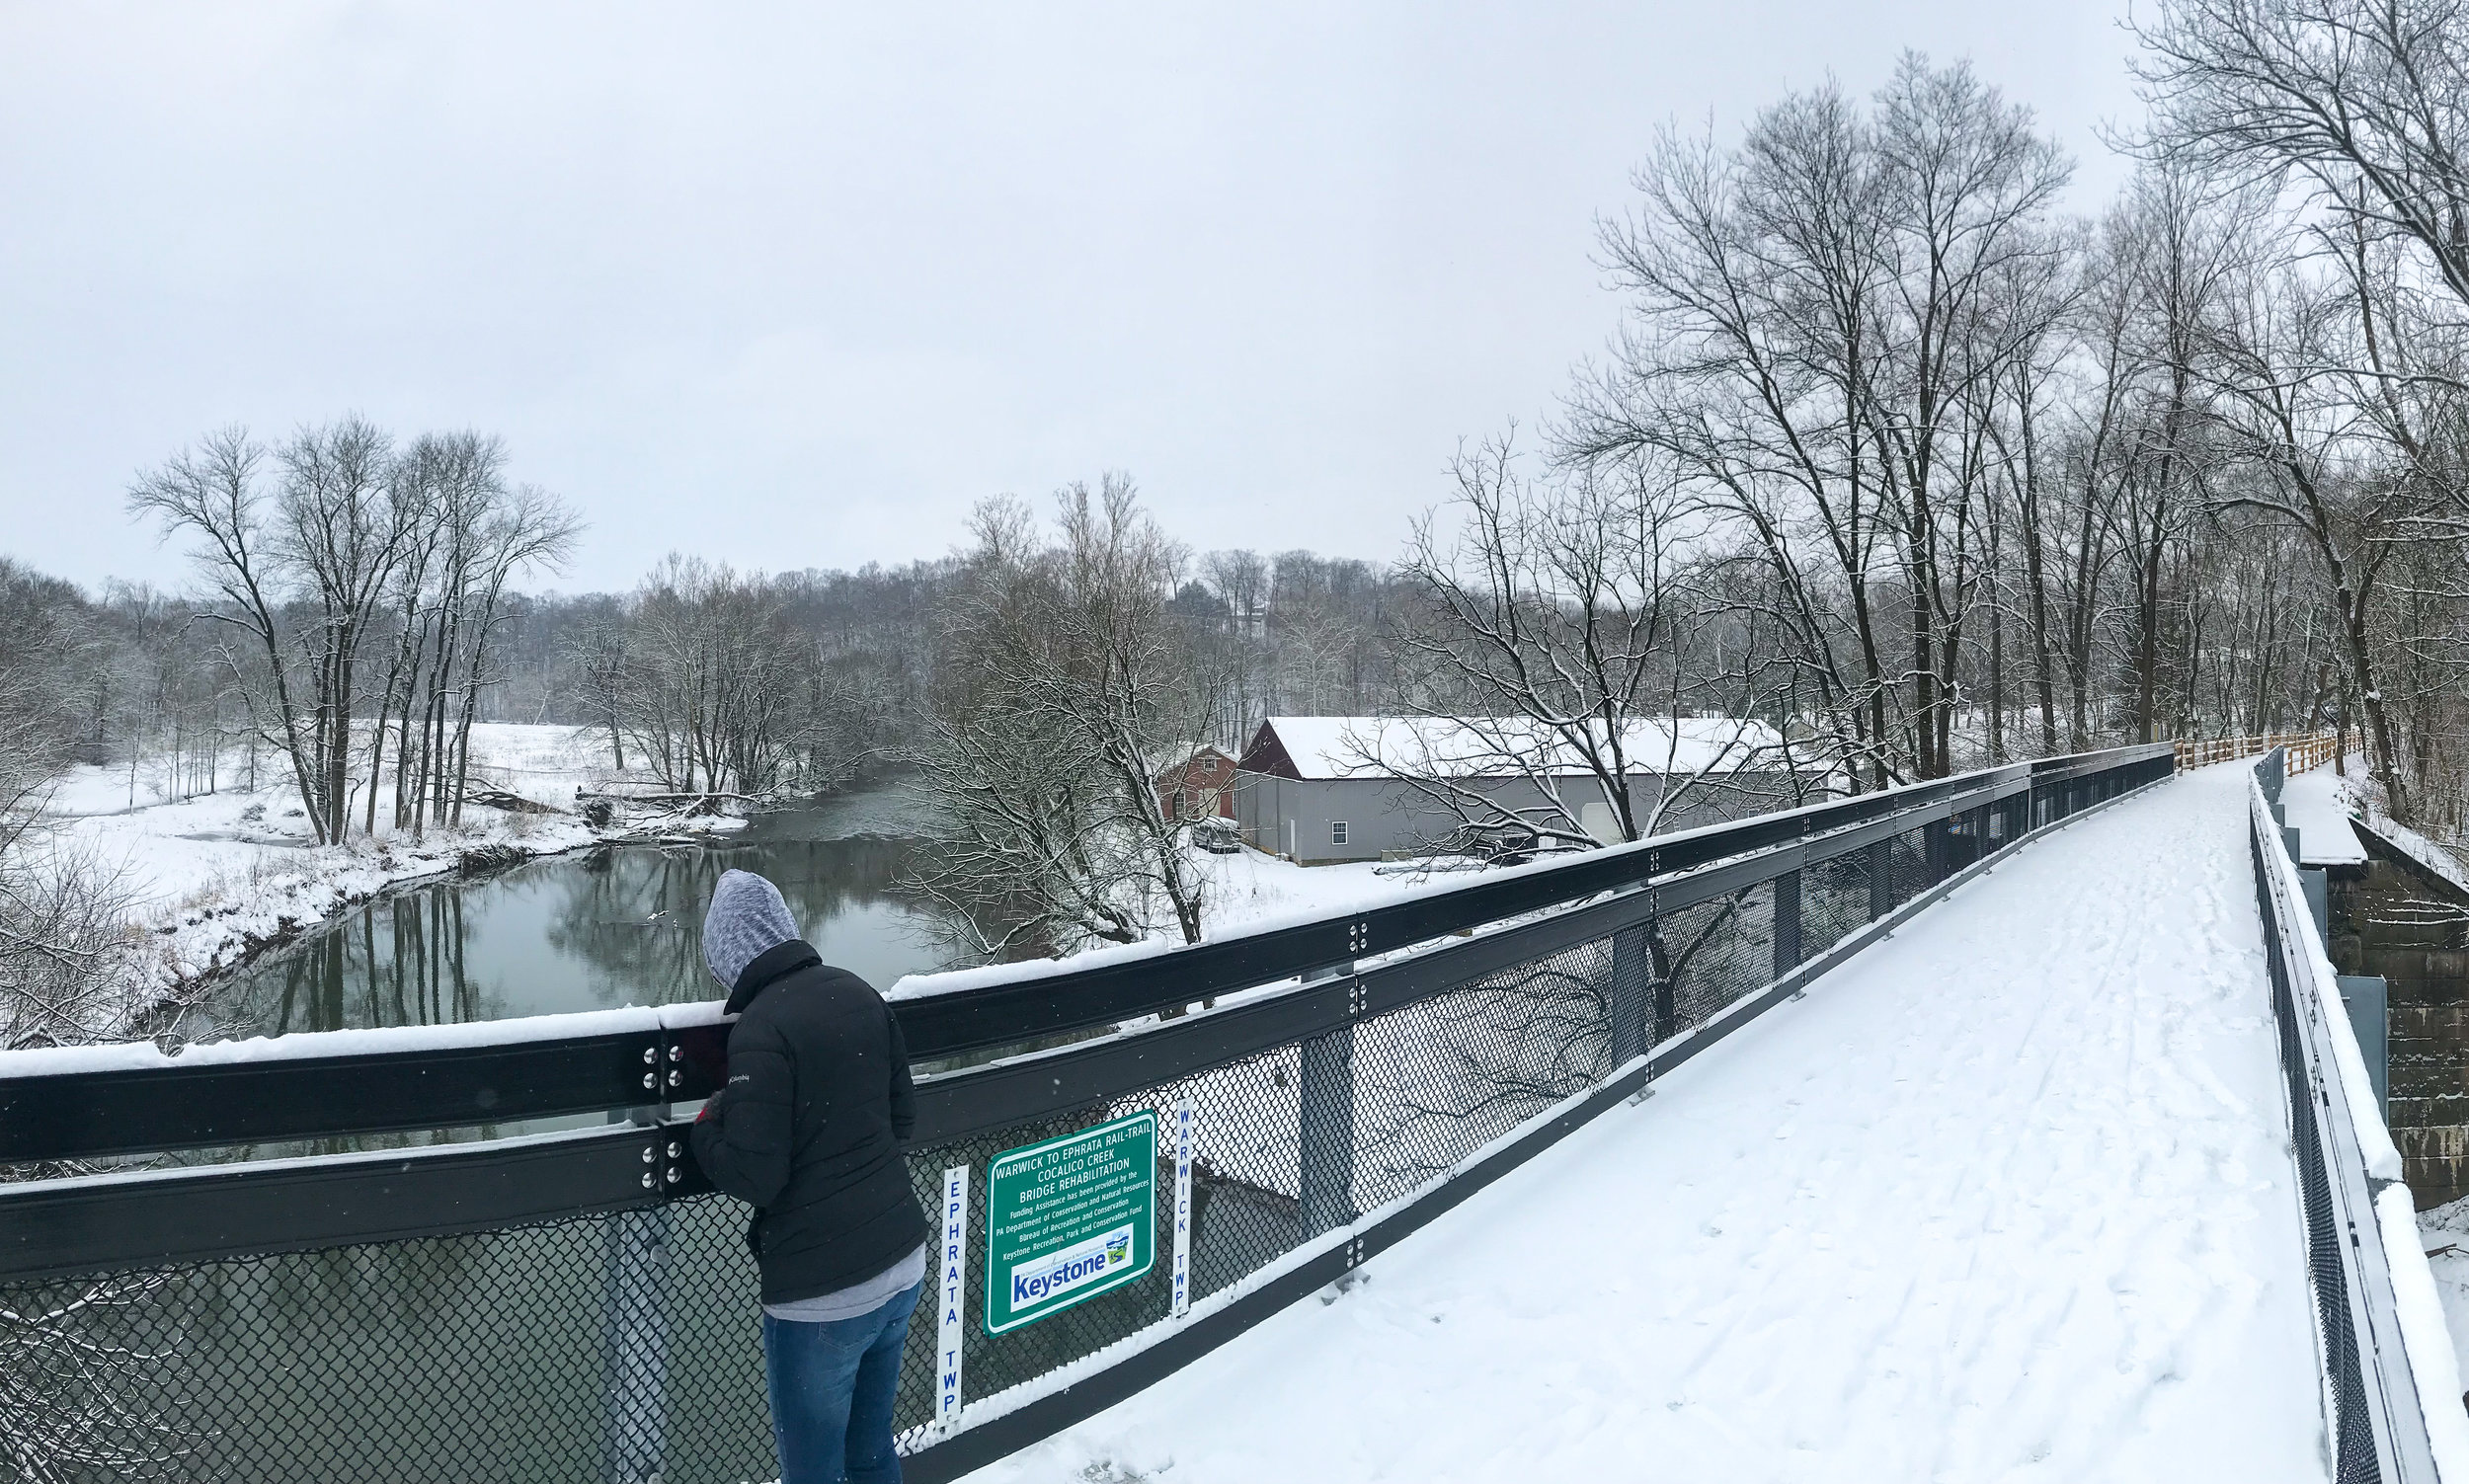 The Warwick to Ephrata Rail-Trail - A new year, a new bridge, and the best new route directly from Lititz to Ephrata.